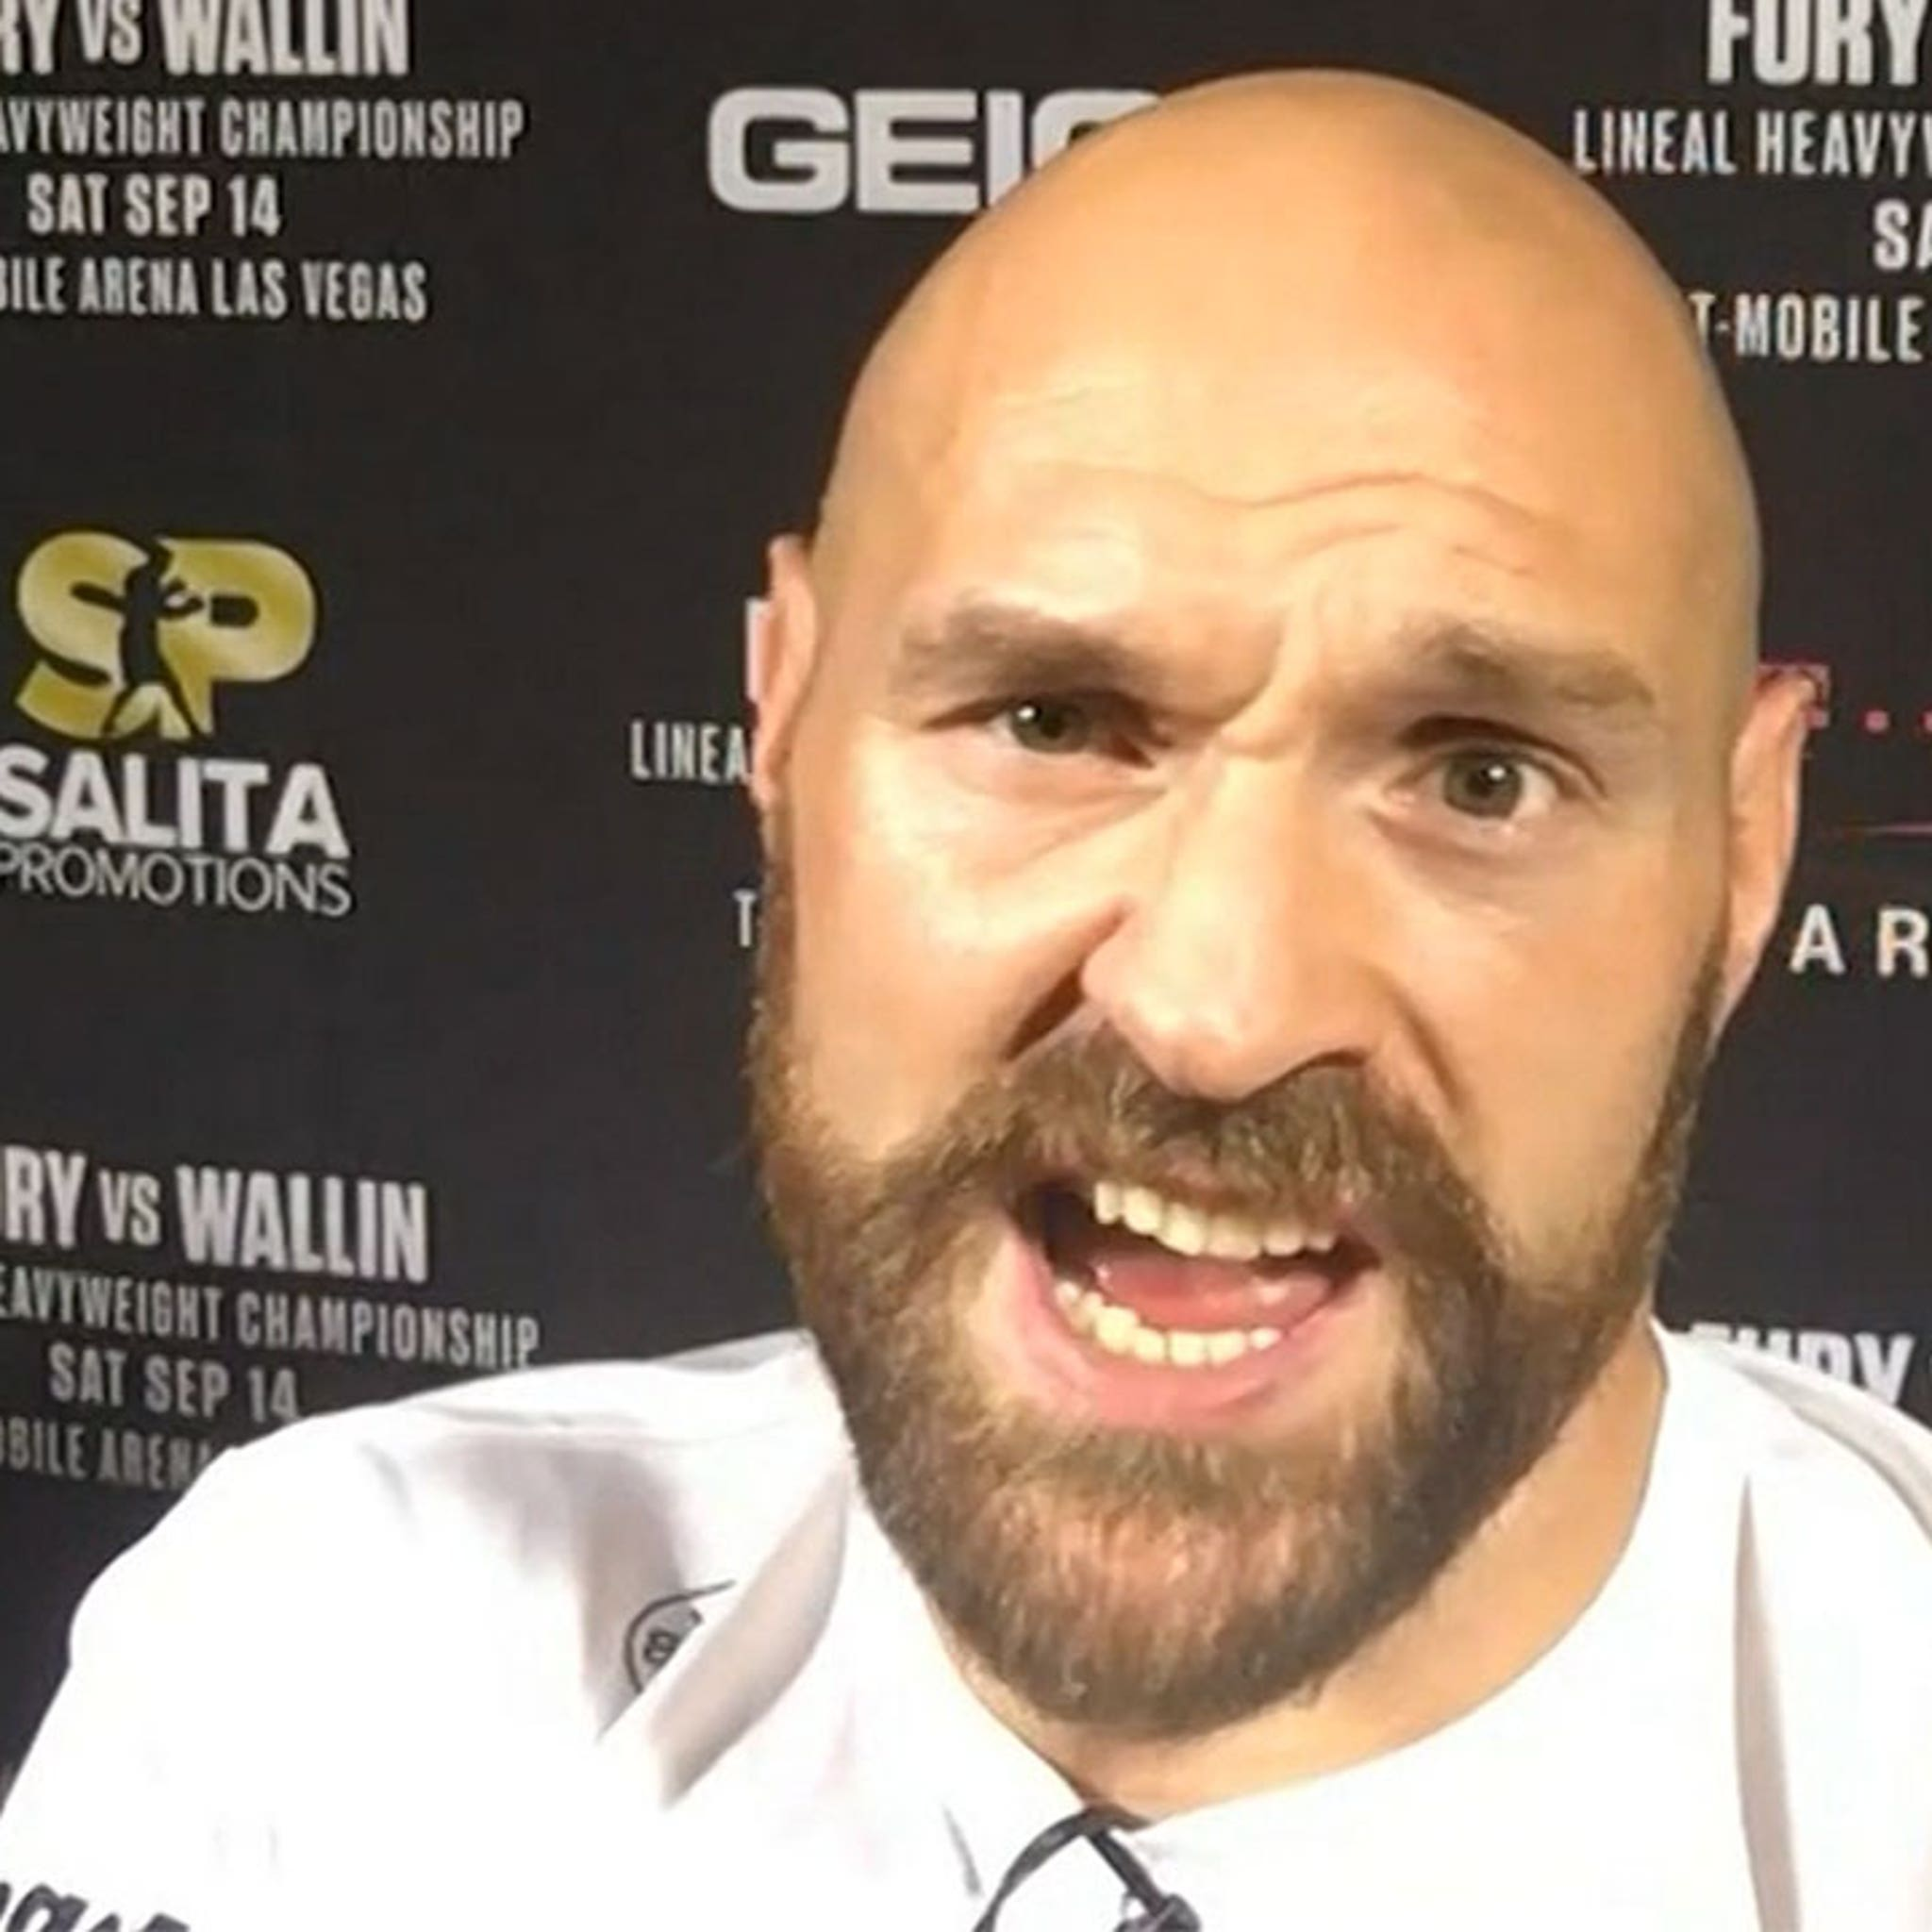 Tyson Fury Says Money's Overrated, 'I've Never Met a Happy Millionaire'